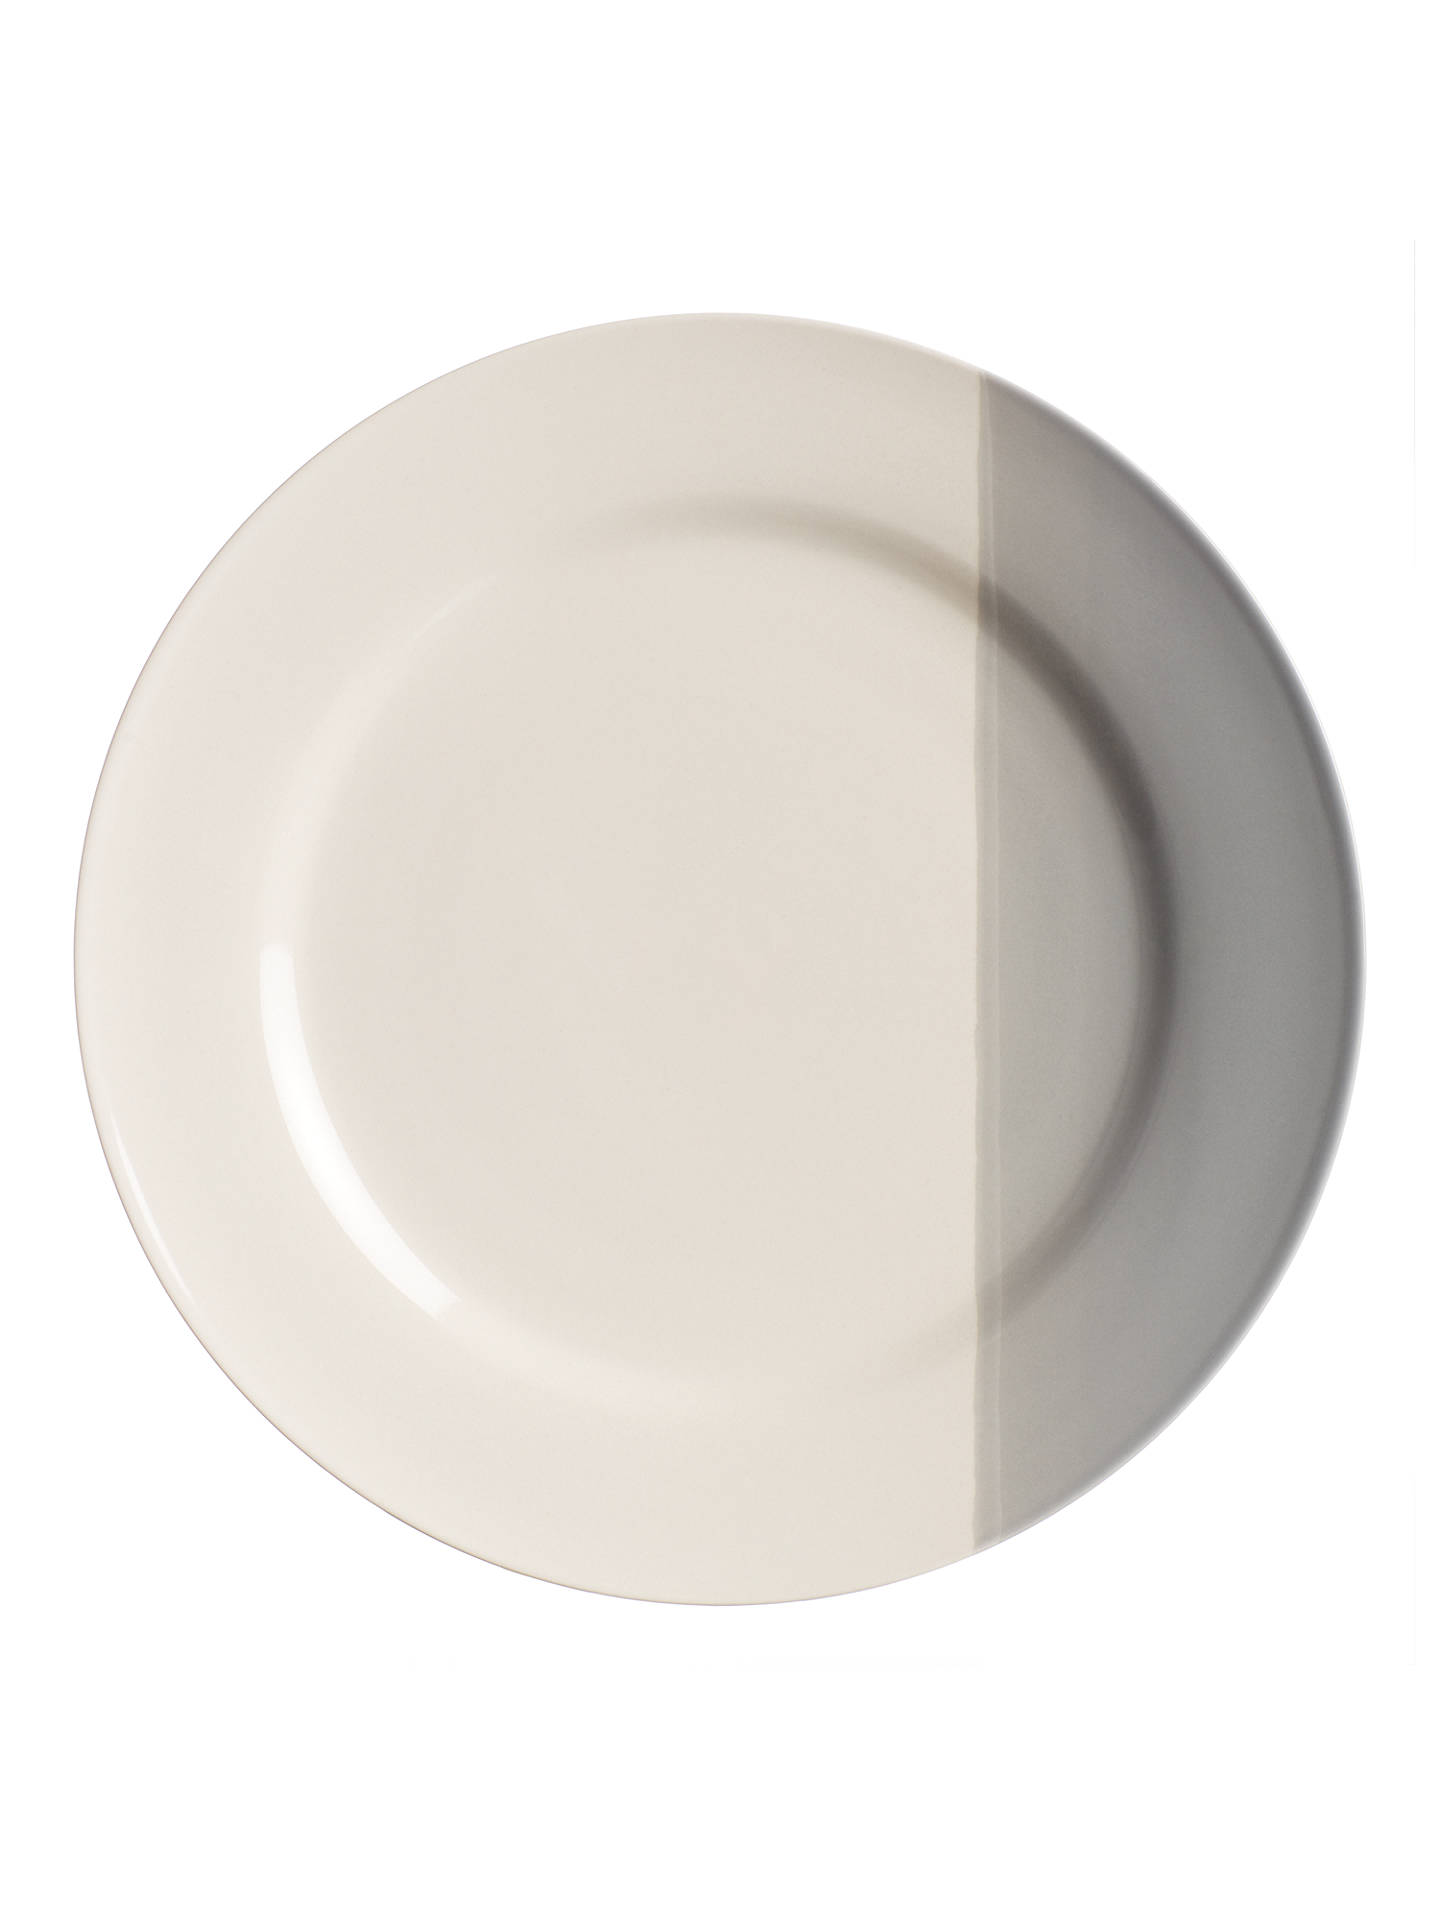 BuyJohn Lewis & Partners Nova Dinnerware Set, 12 Pieces, Grey/Multi Online at johnlewis.com